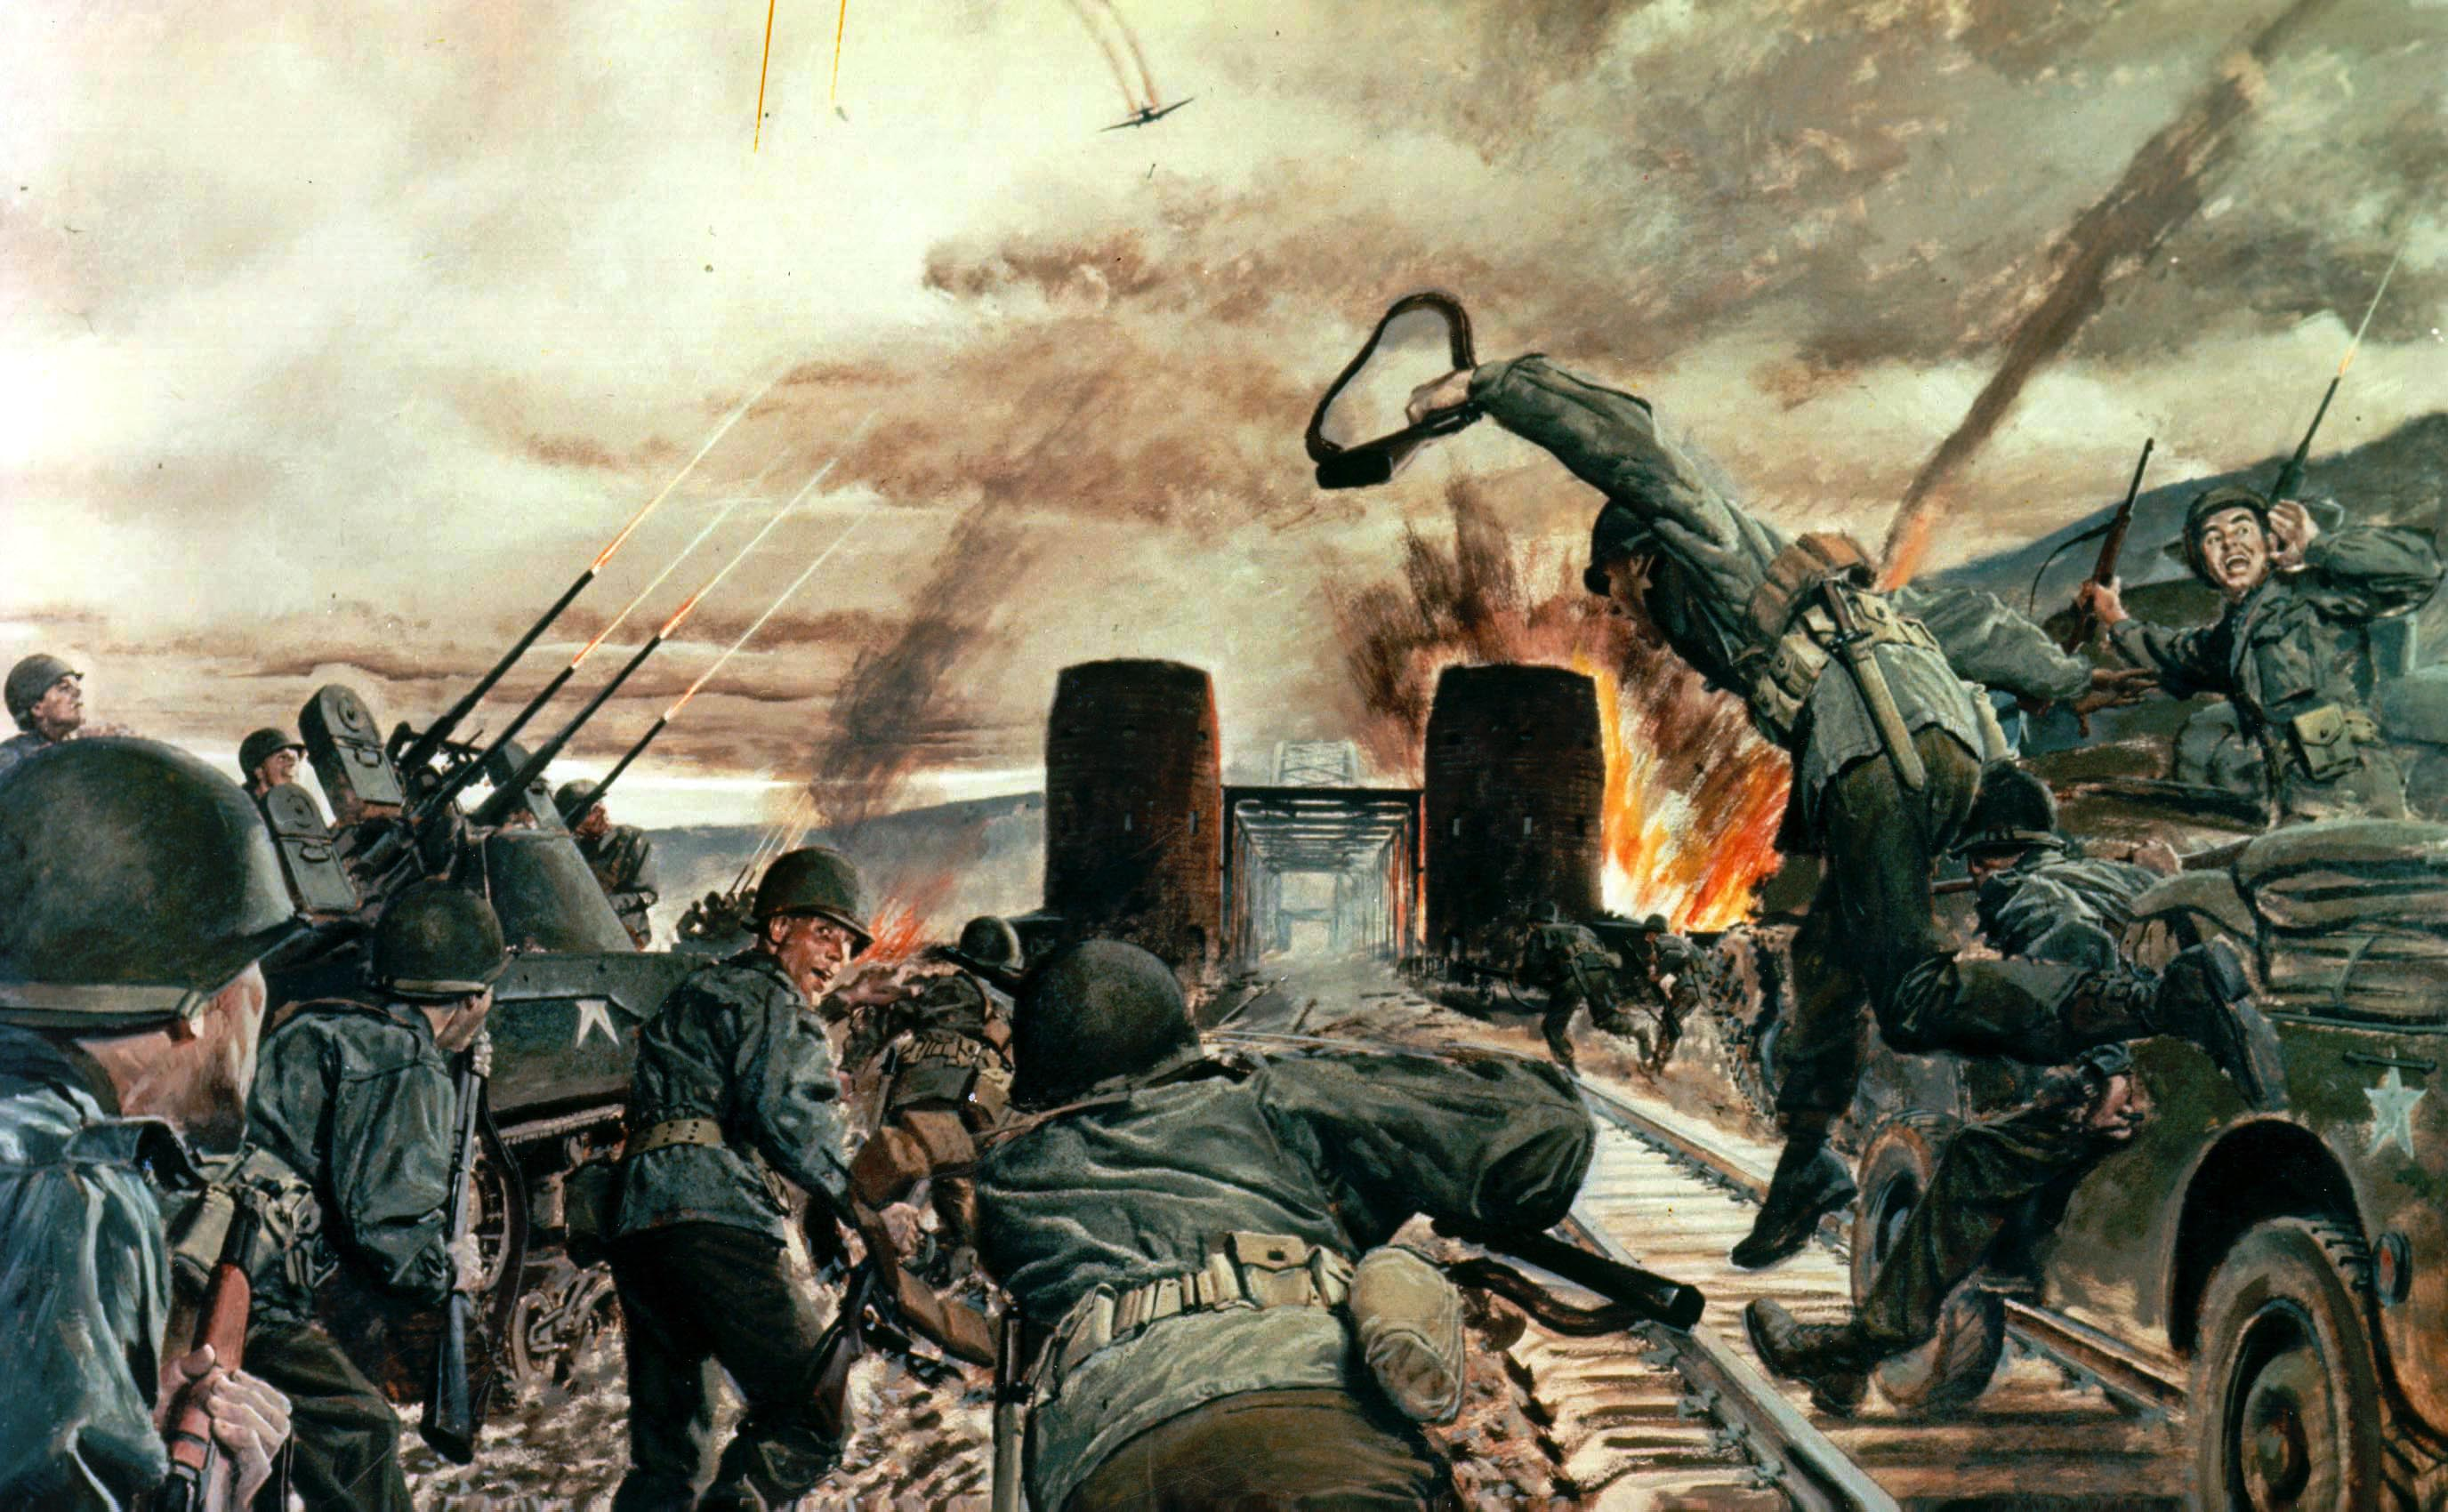 Poster printed by the US Army commemorating the capturing of the Ludendorff Bridge